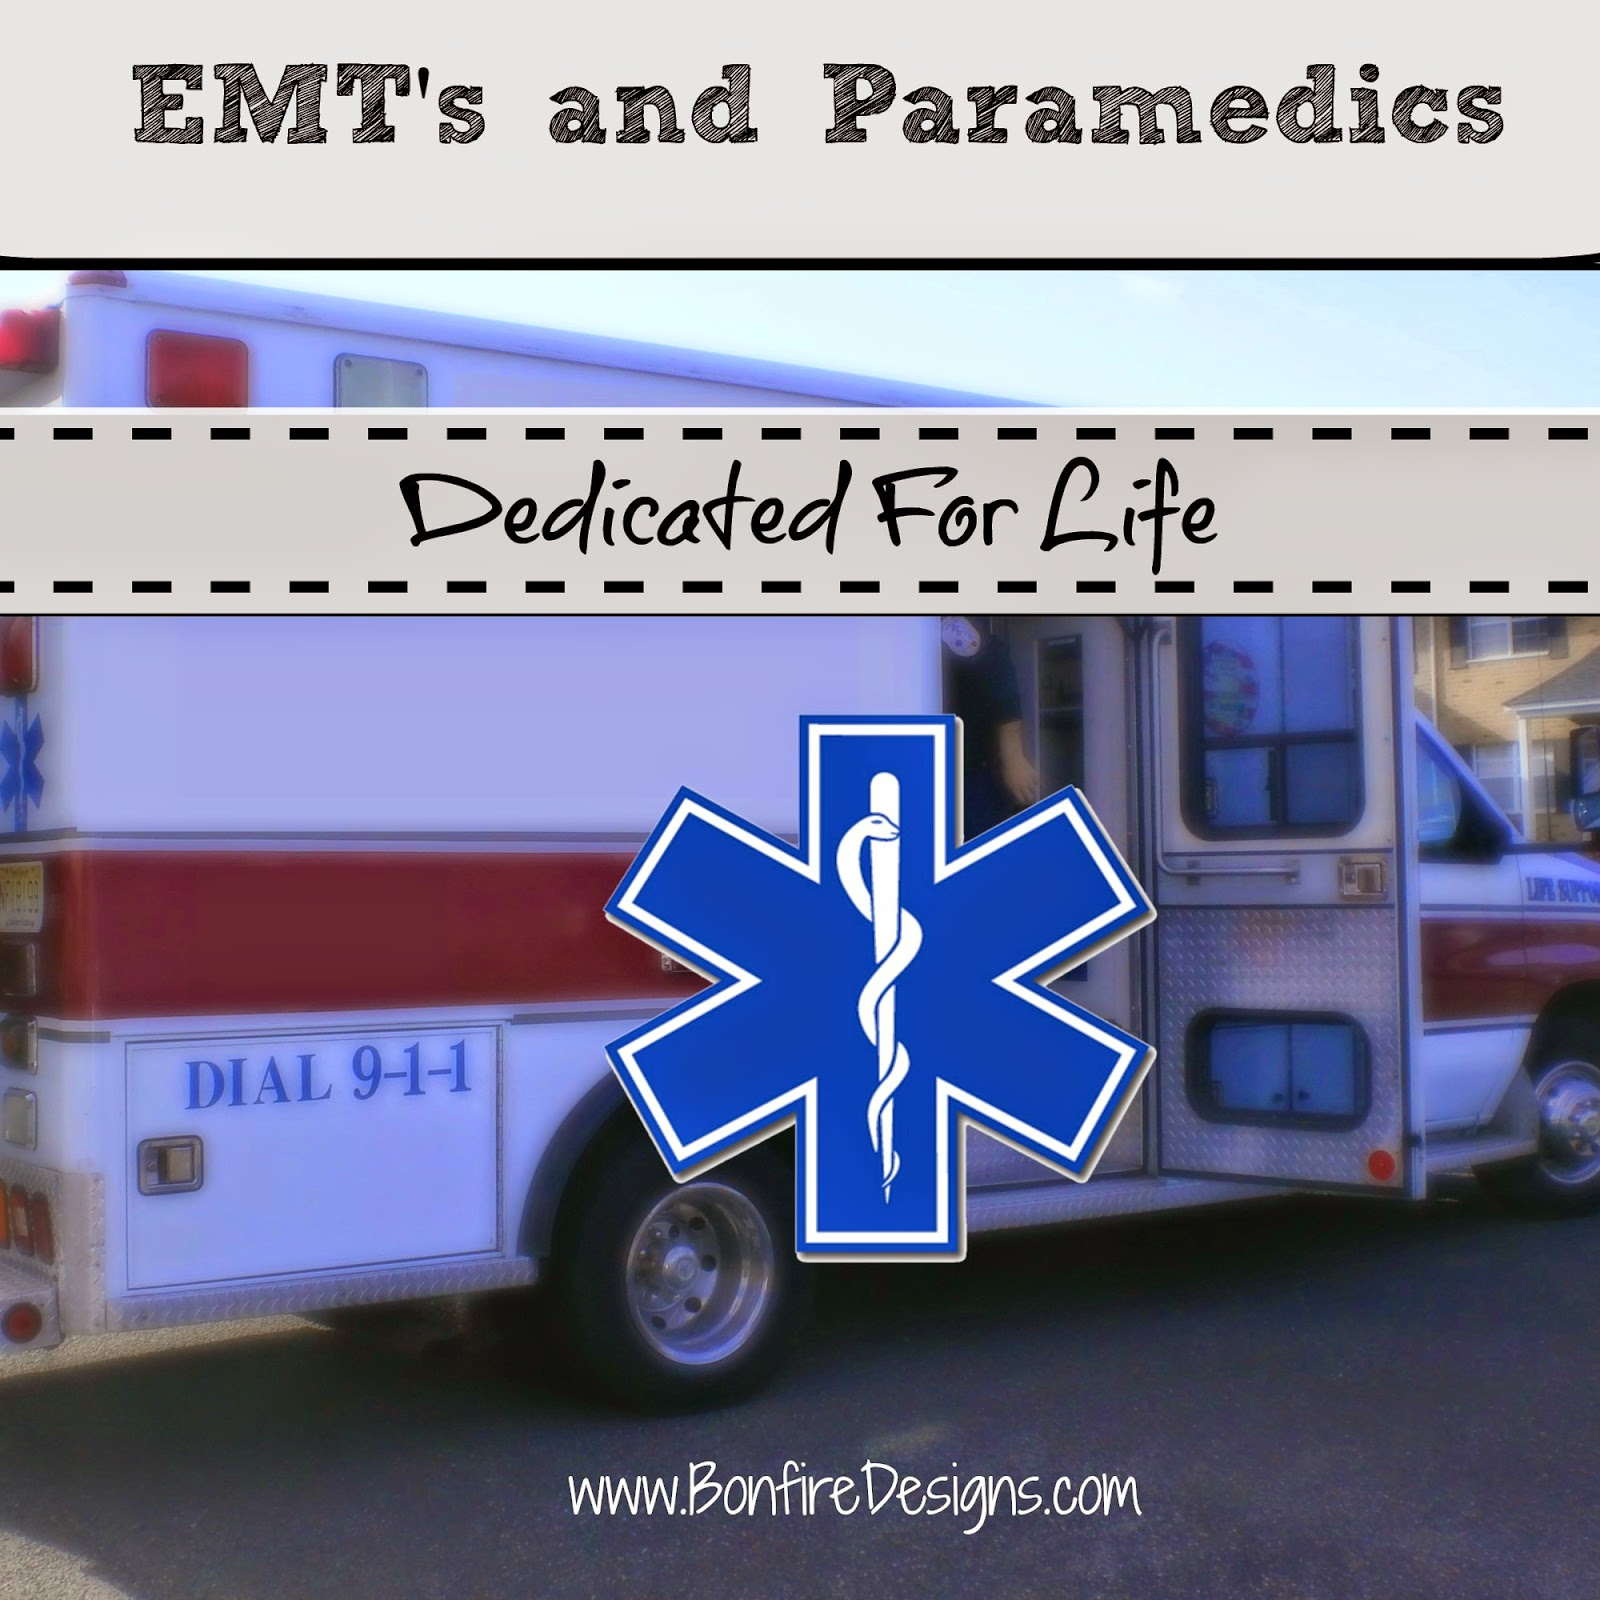 EMT and Paramedic Apparel and Gifts